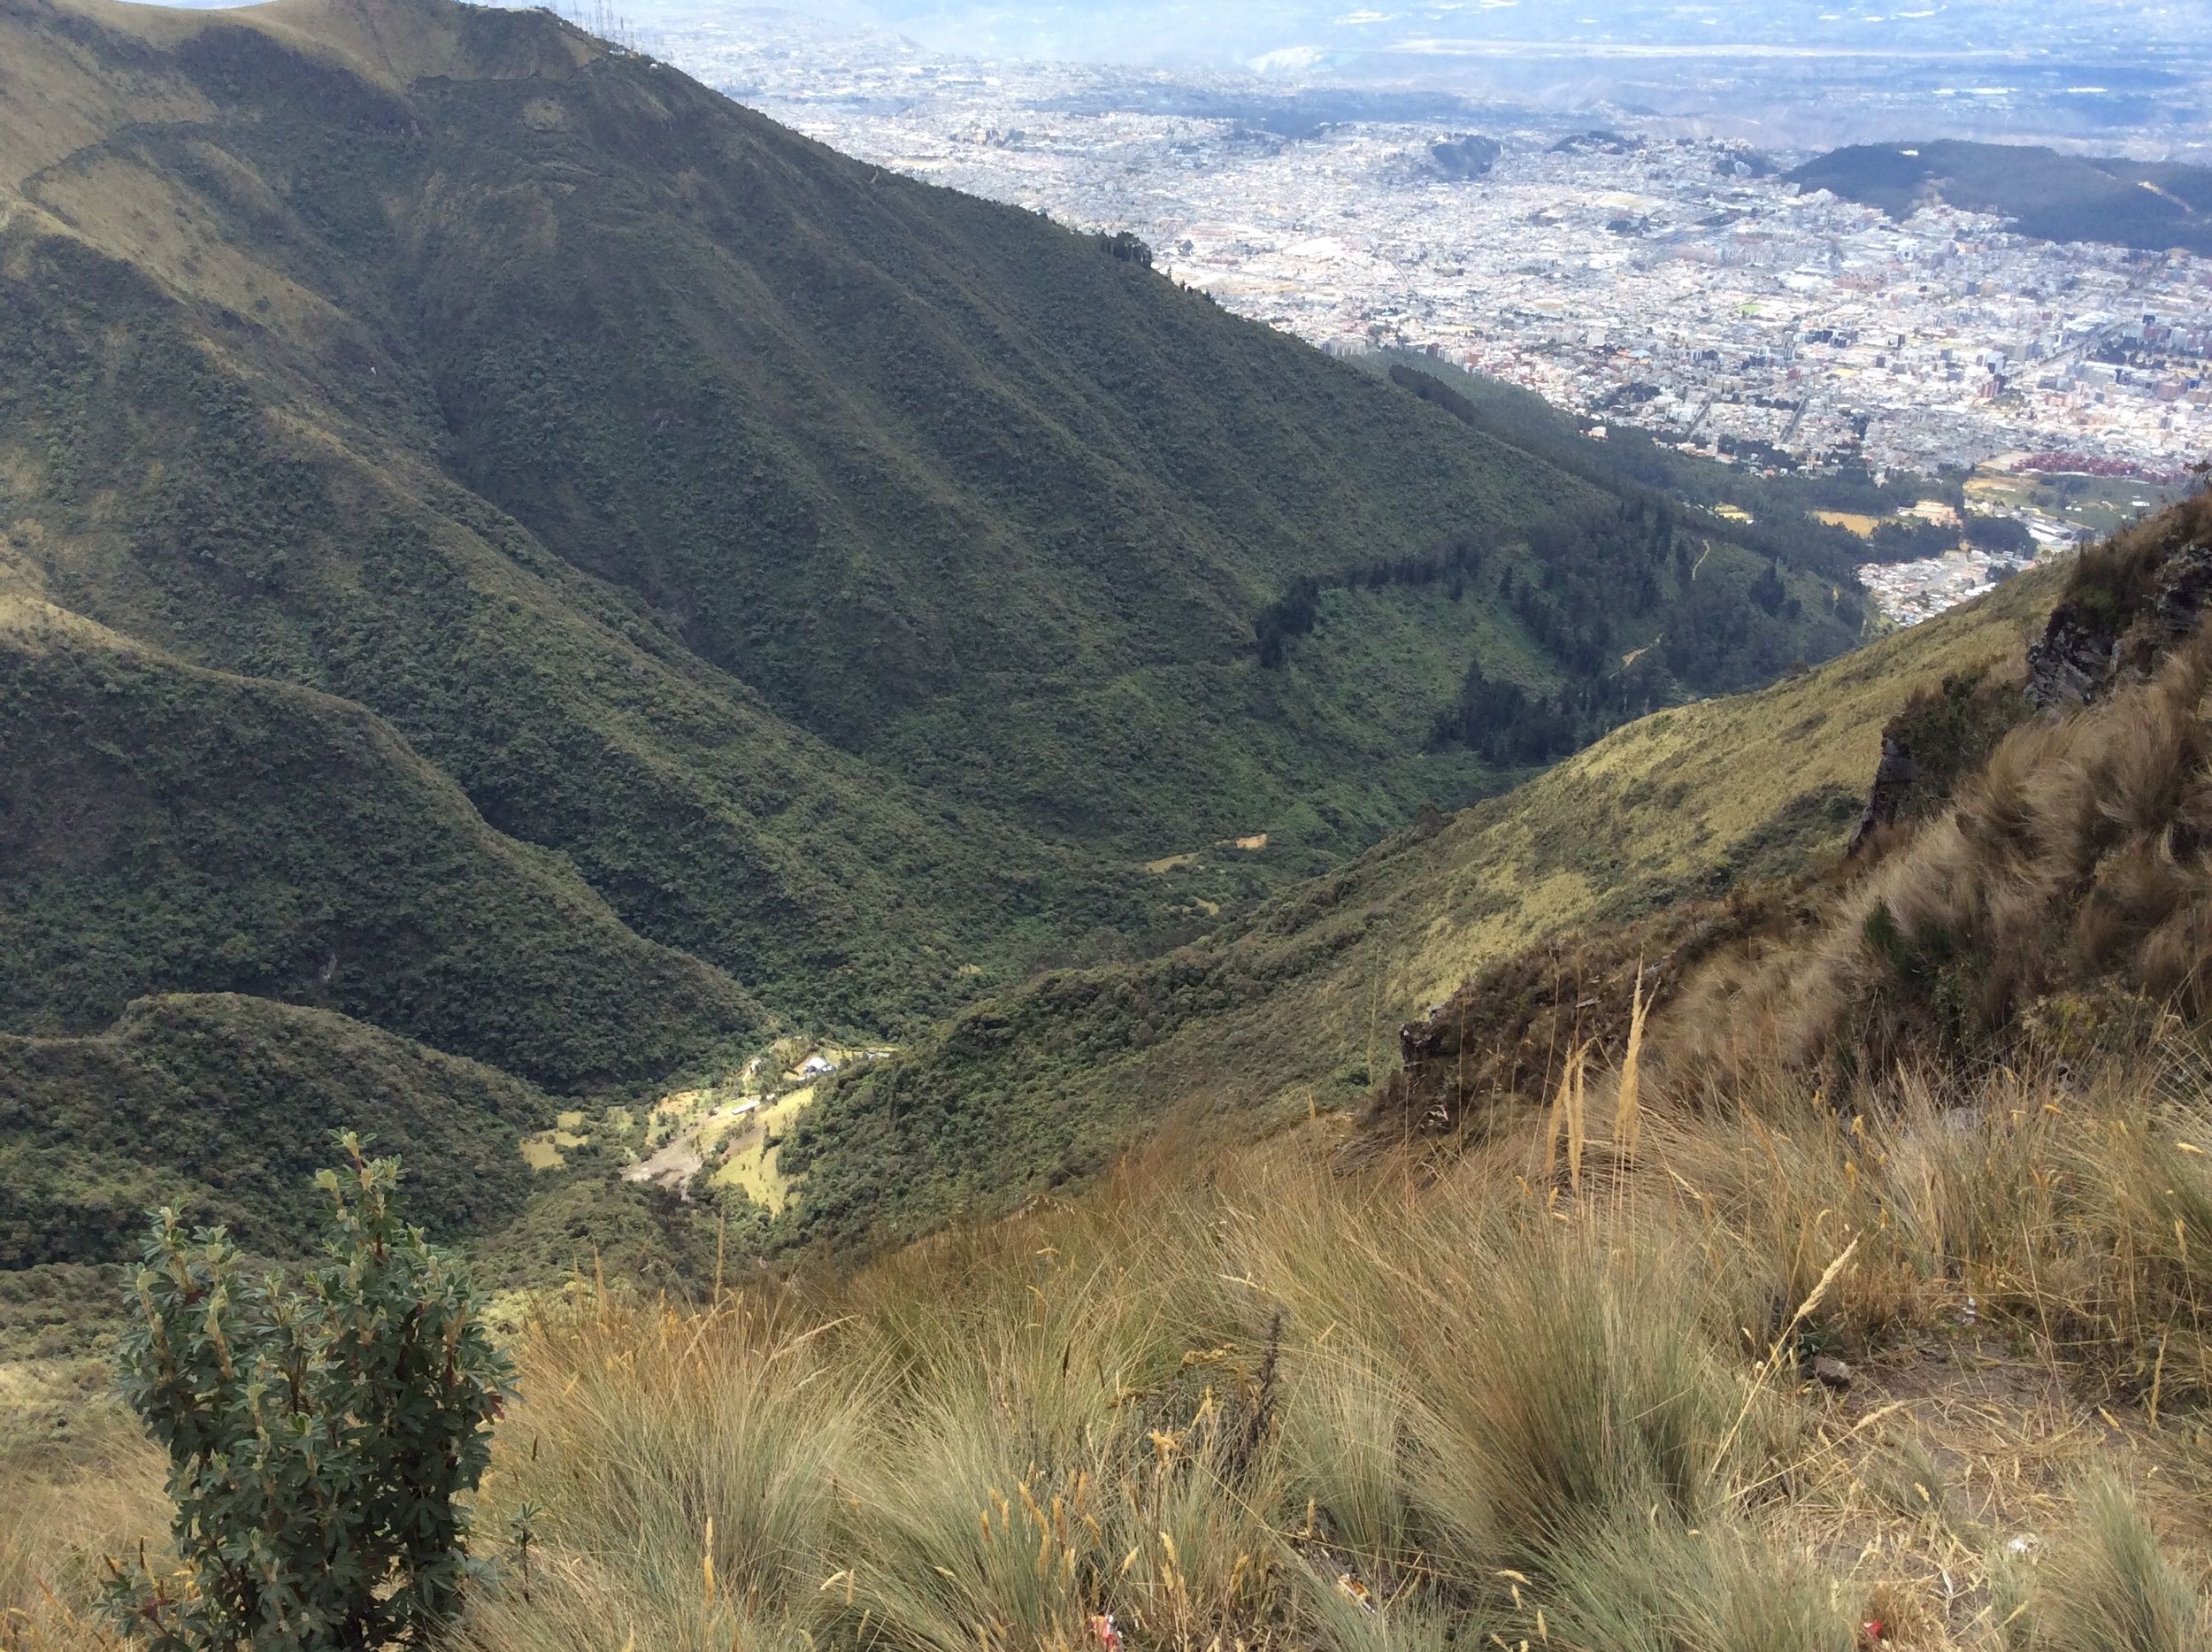 Pretty steep drops, but a lovely view of Quito